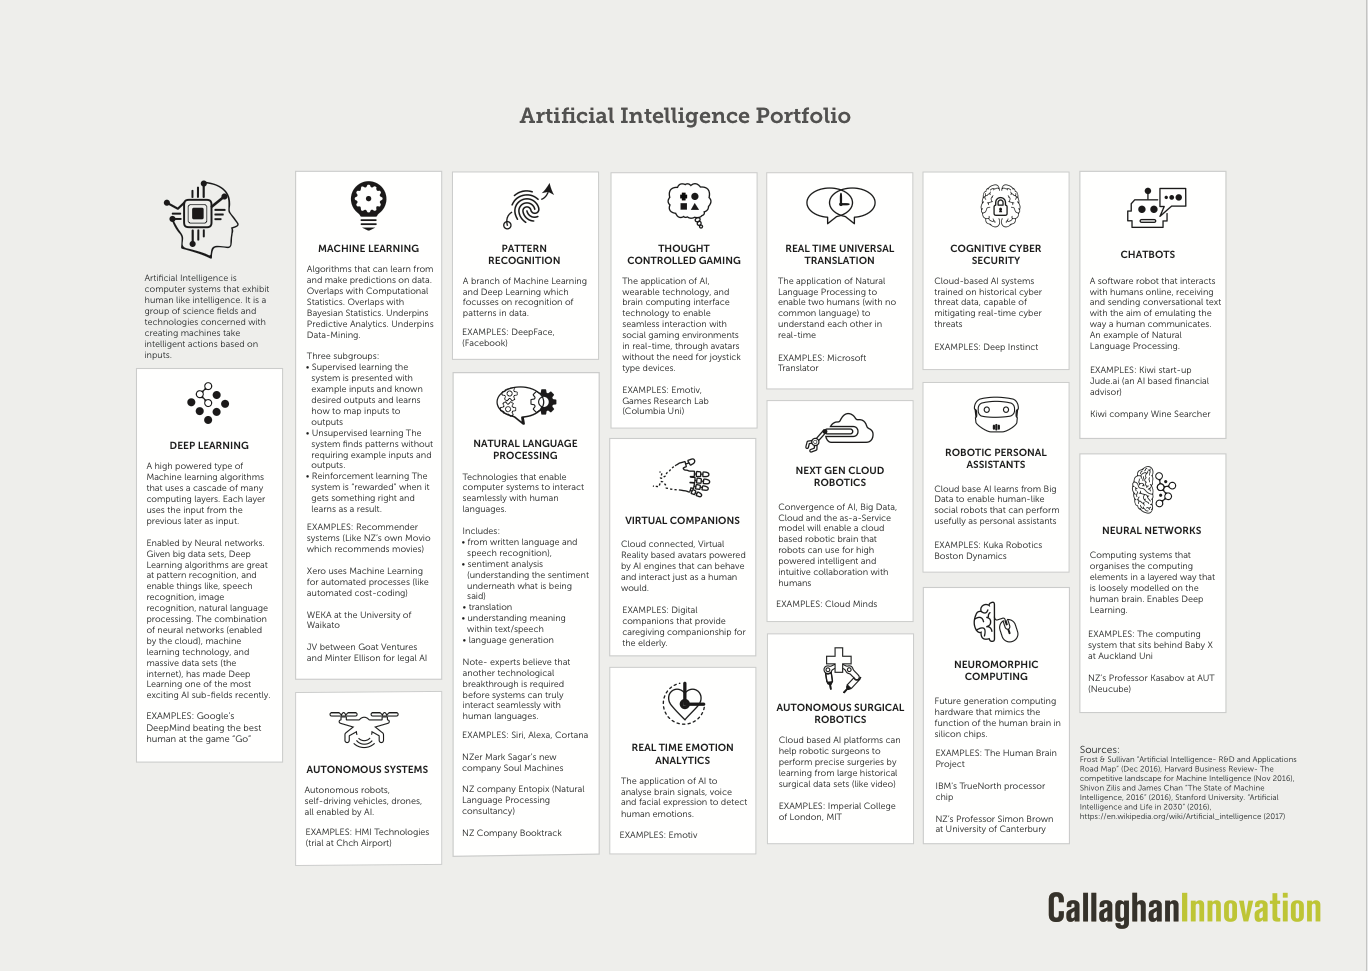 Callaghan Innovation AI portfolio